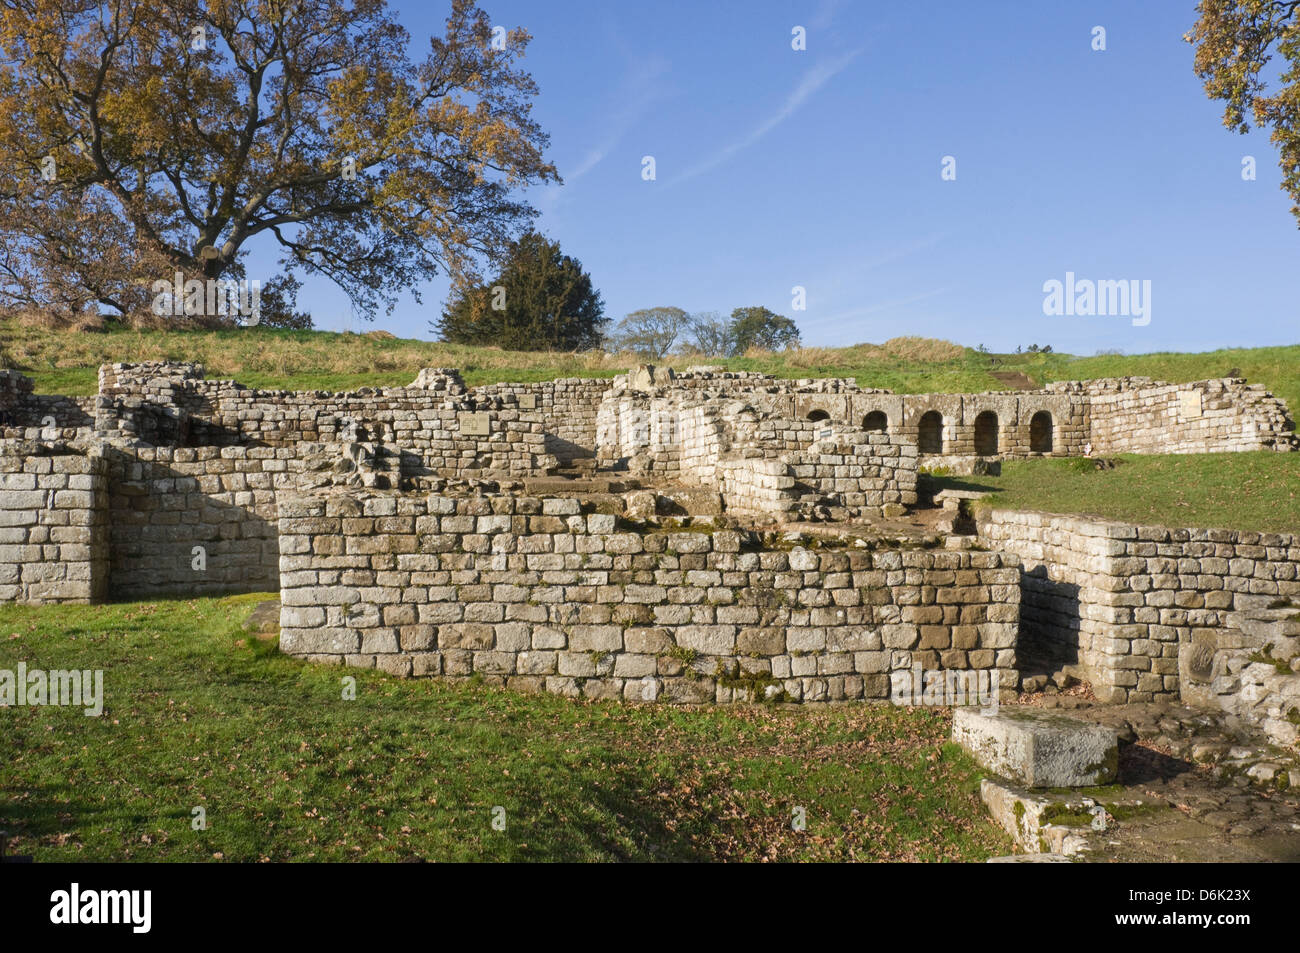 Remains of the bath site on the the River North Tyne, Hadrian's Wall, UNESCO Site, Northumbria National Park, - Stock Image